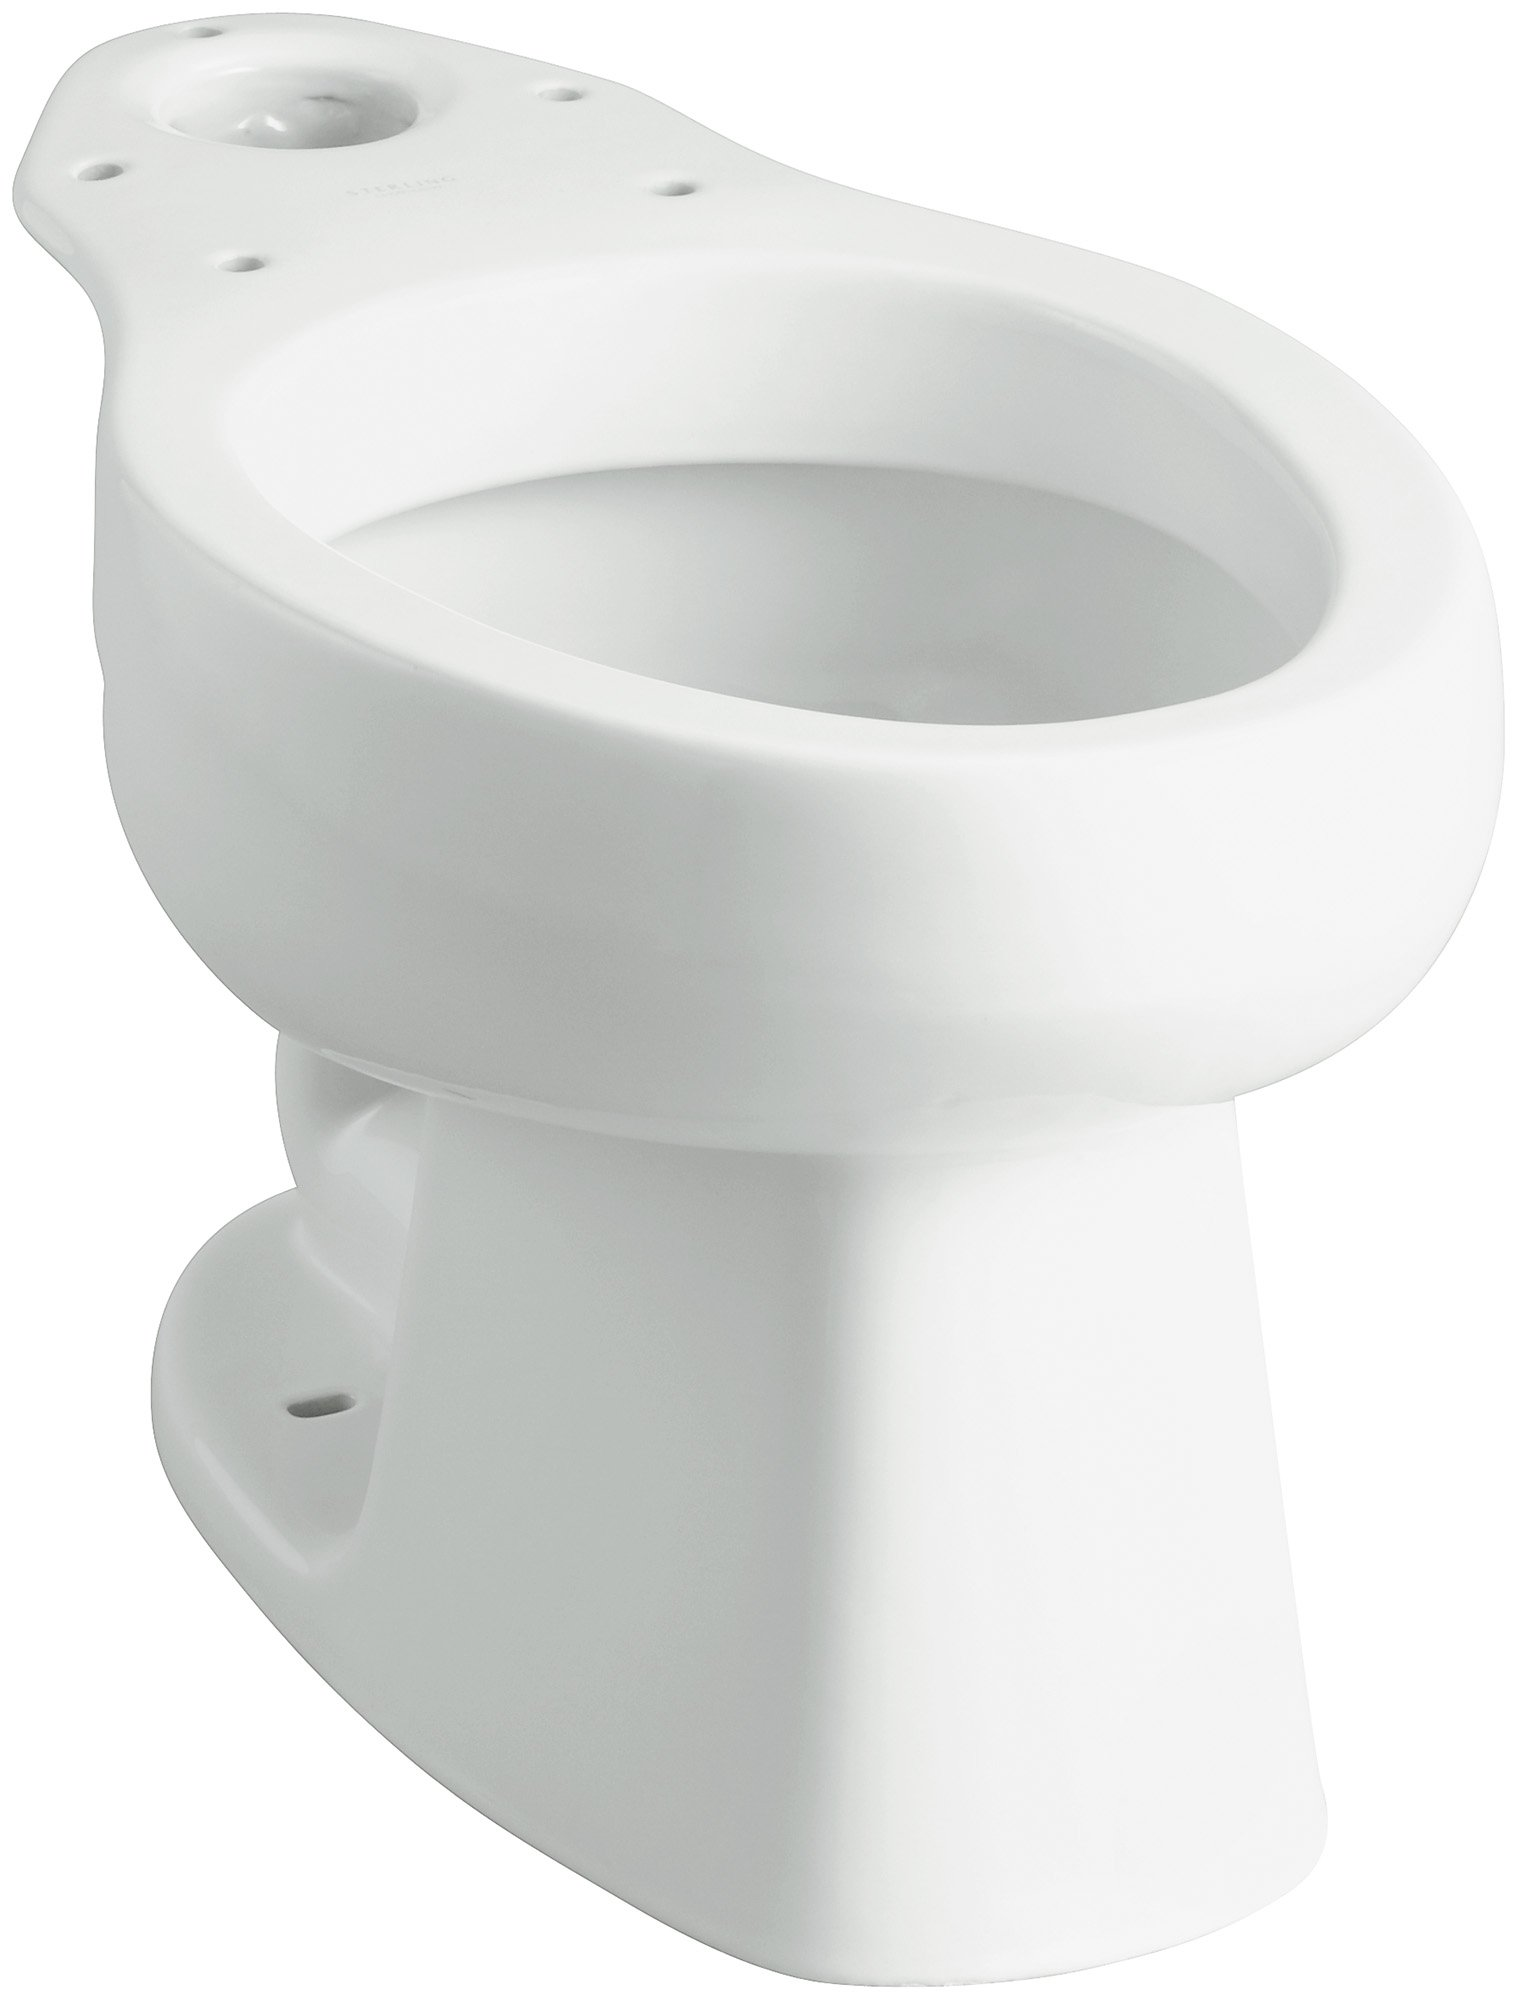 STERLING 403215-0 Windham Elongated Toilet Bowl, White by STERLING, a KOHLER Company